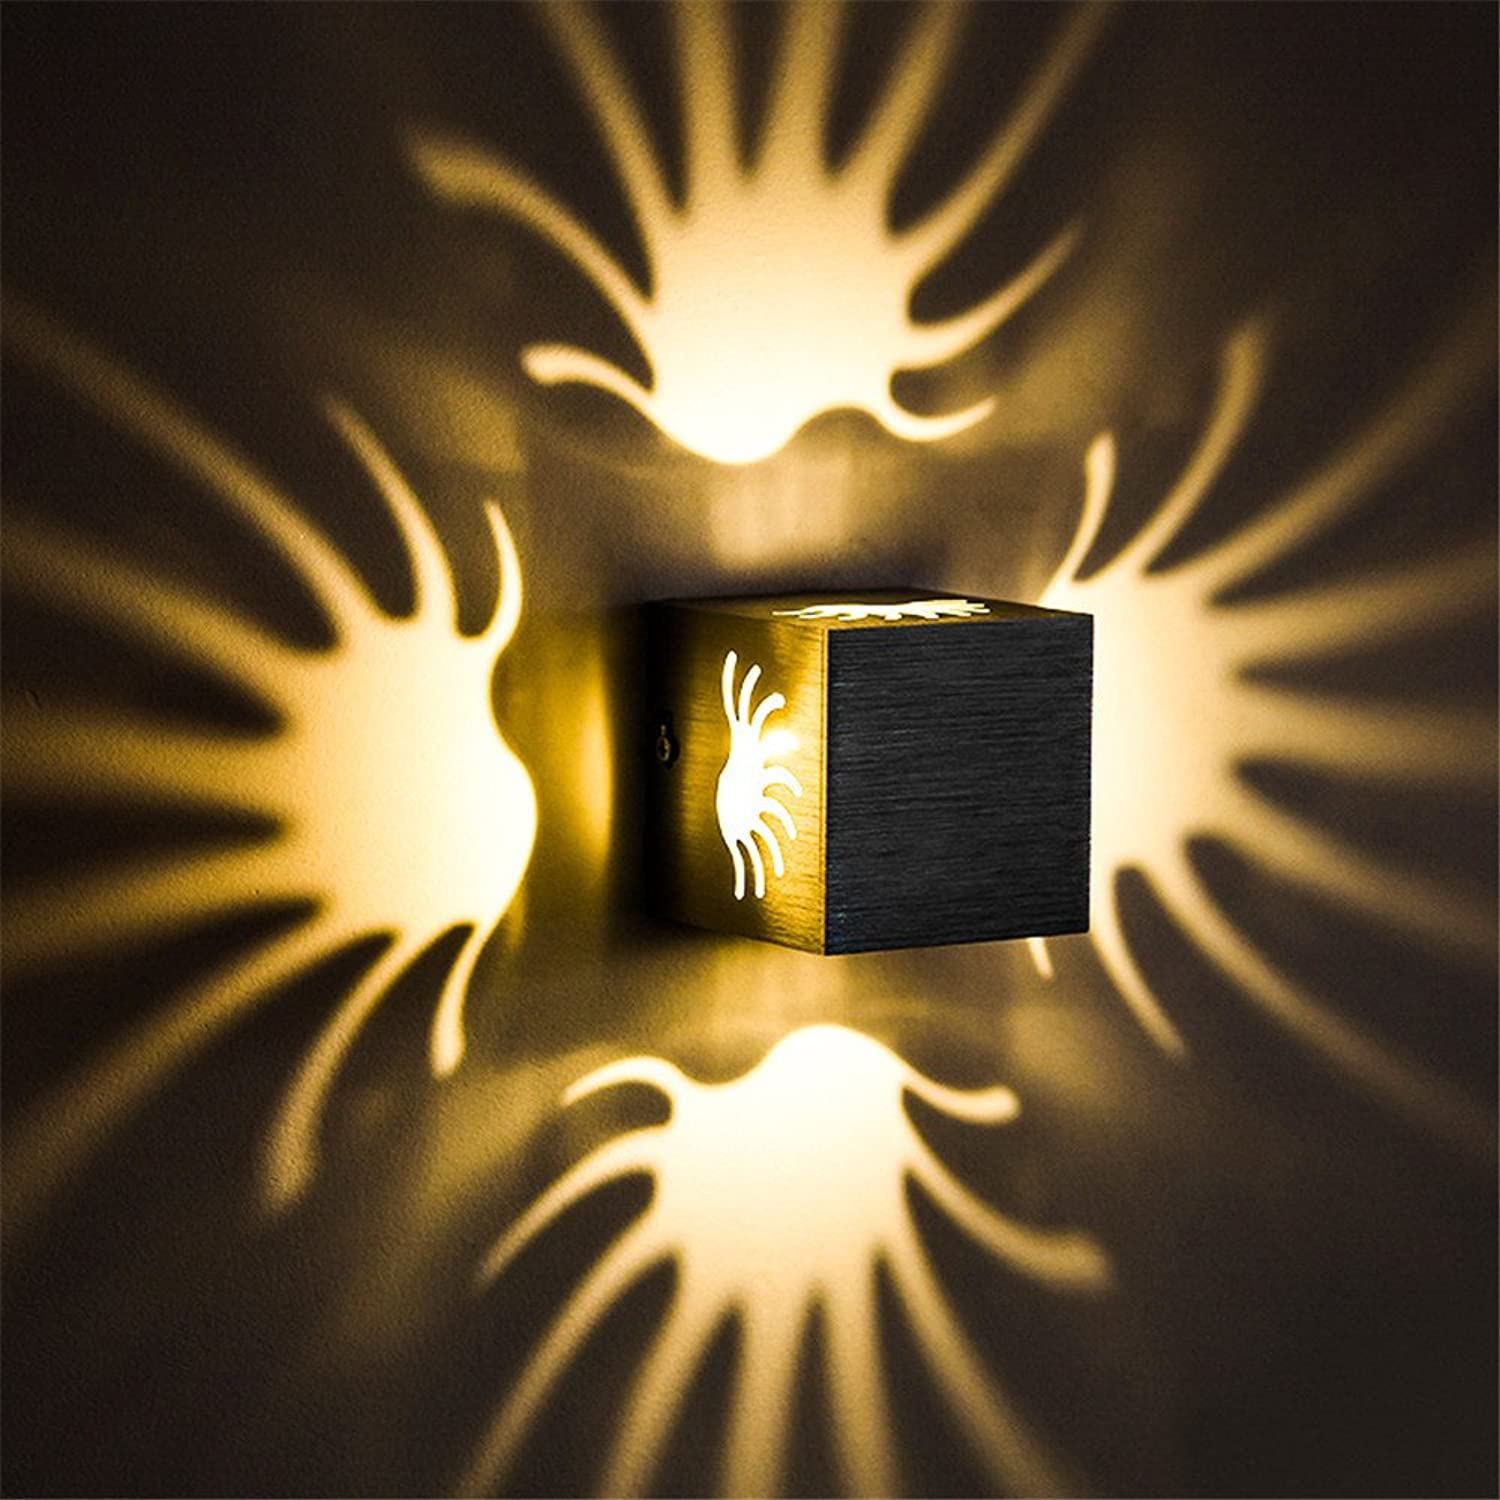 Amadoierly Wand LED Edelstahl Hotel Modern Creative Square Multi-Farbe Energieeinsparung   80 X 80 X 80 mm, Gelb